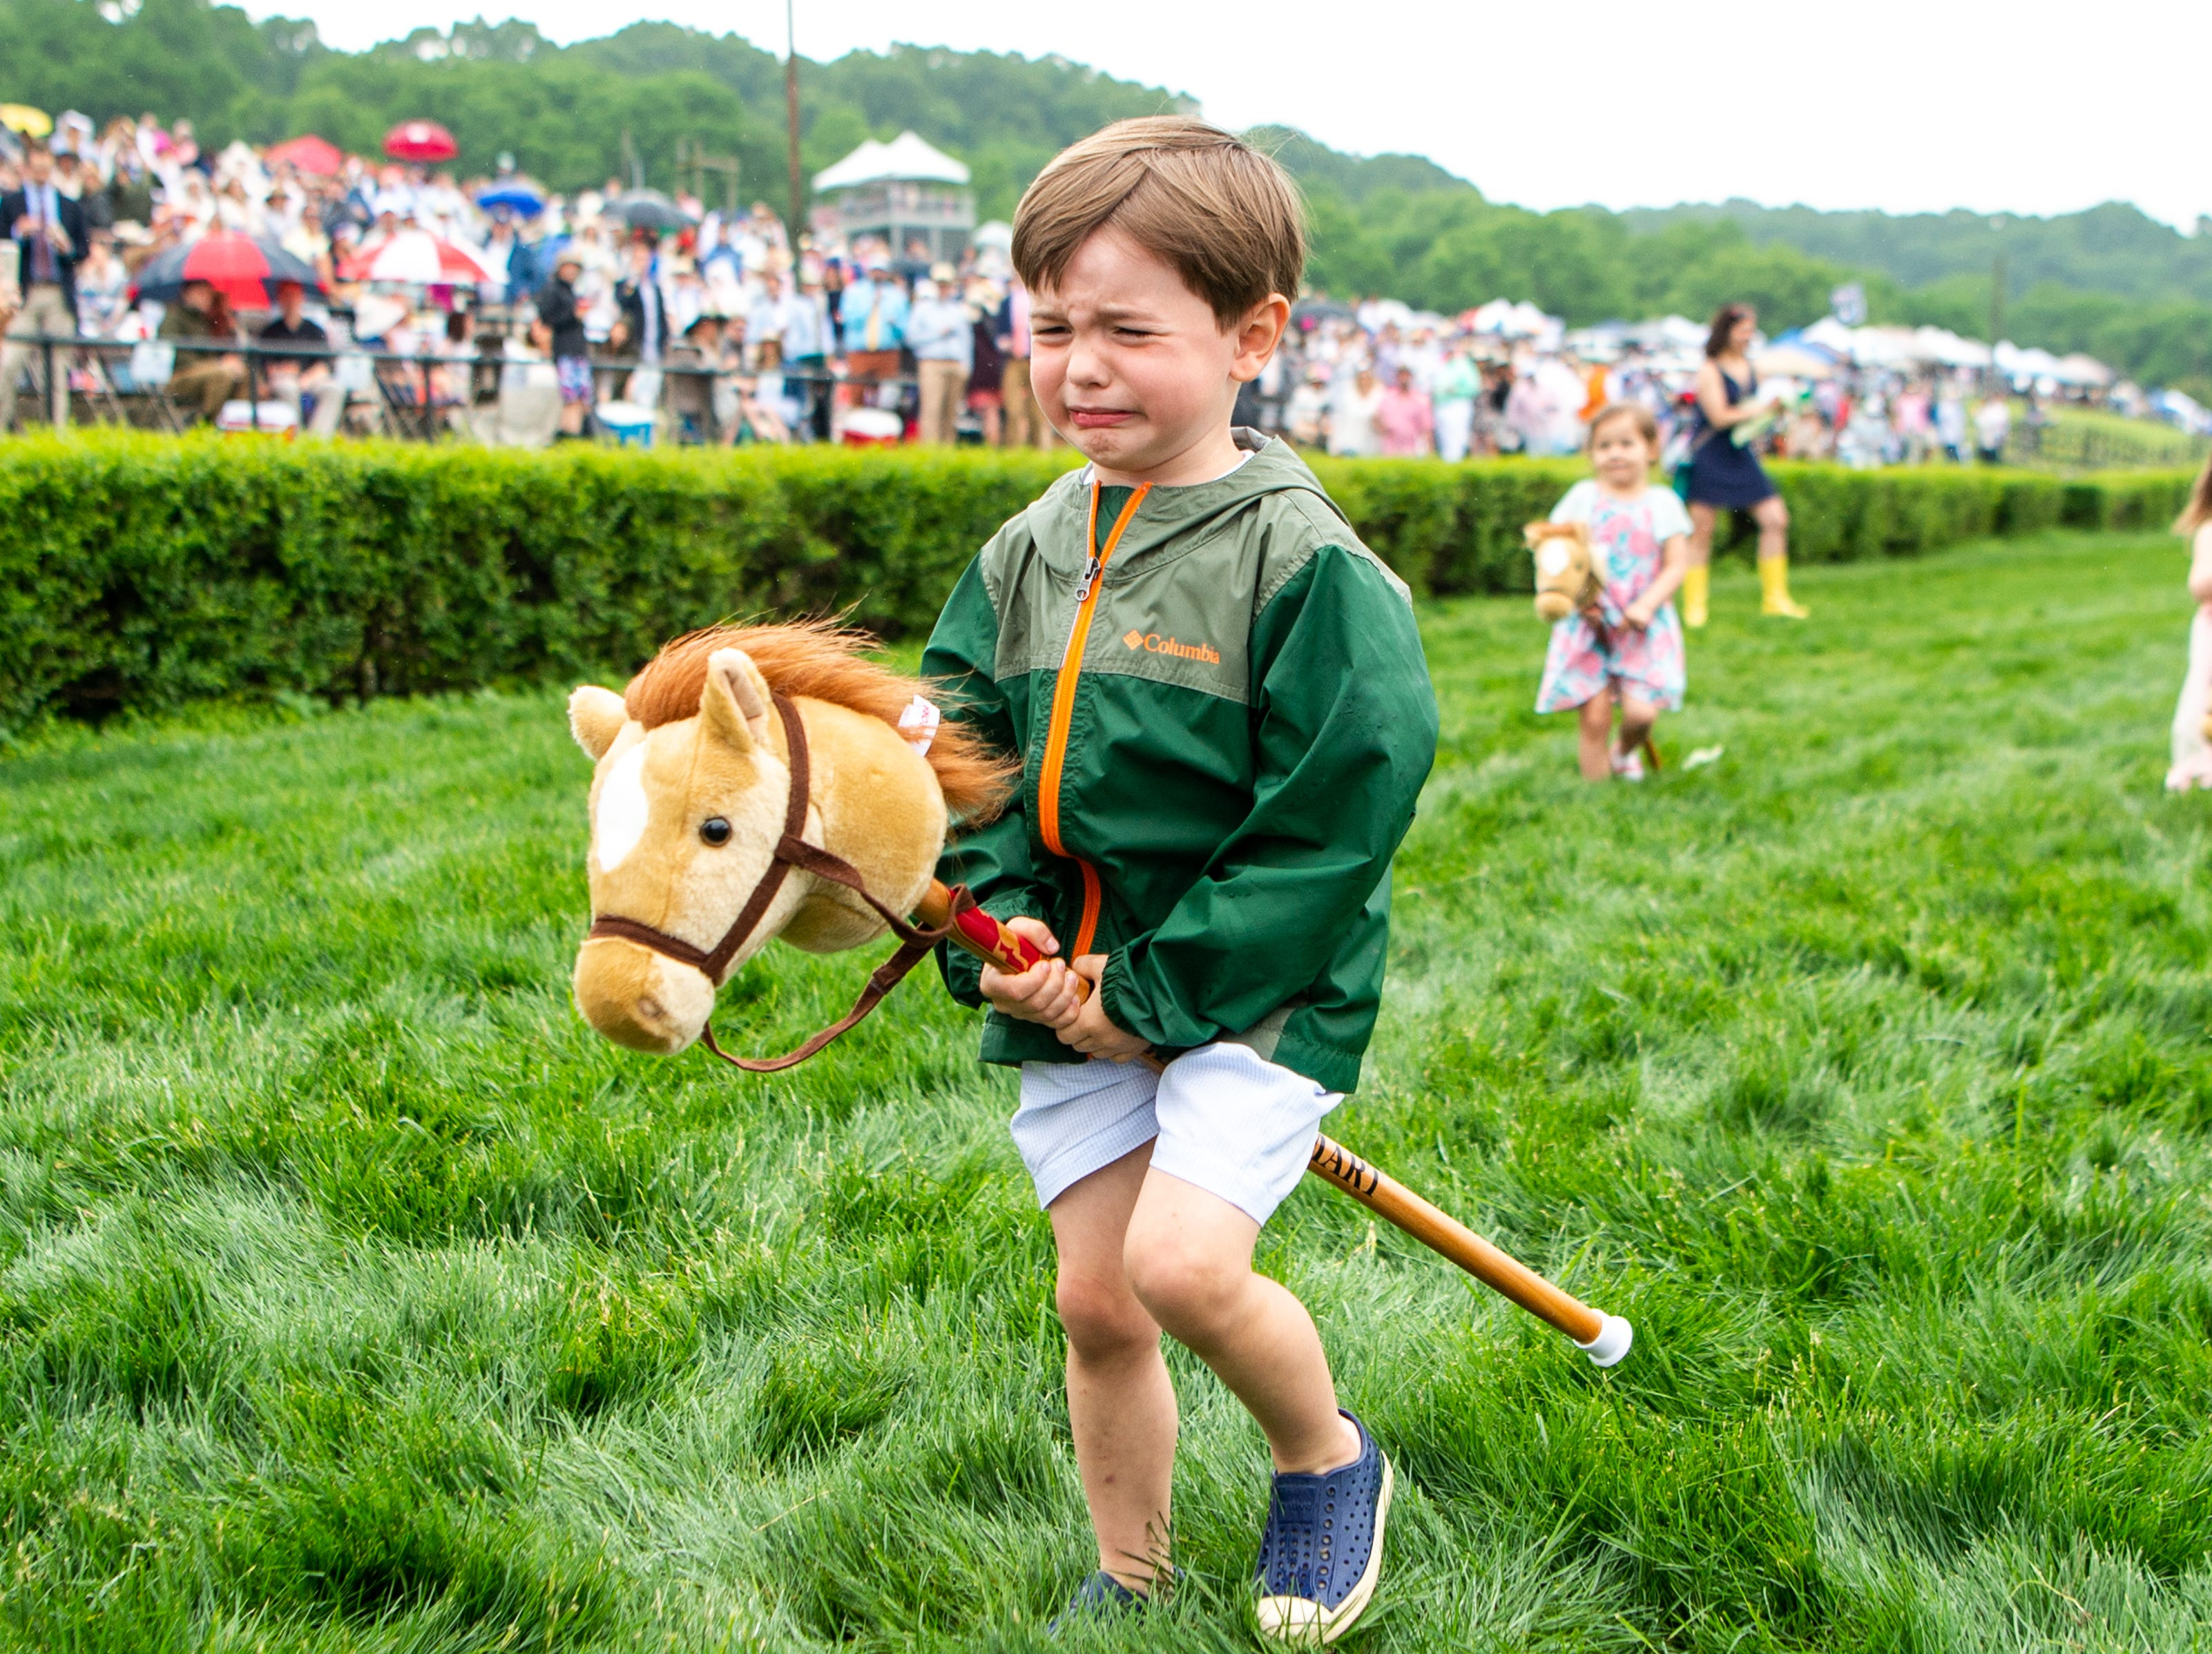 A child cries while competing in the stick horse race during the Iroquois Steeplechase at Percy Warner Park Saturday, May 11, 2019, in Nashville, Tenn.